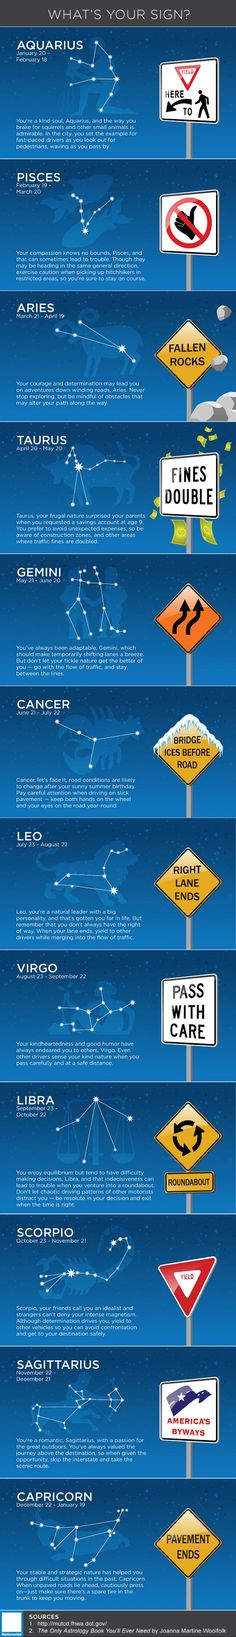 This gave me a chuckle. And yes, roundabouts do confound me at times. :) (Read Libra)